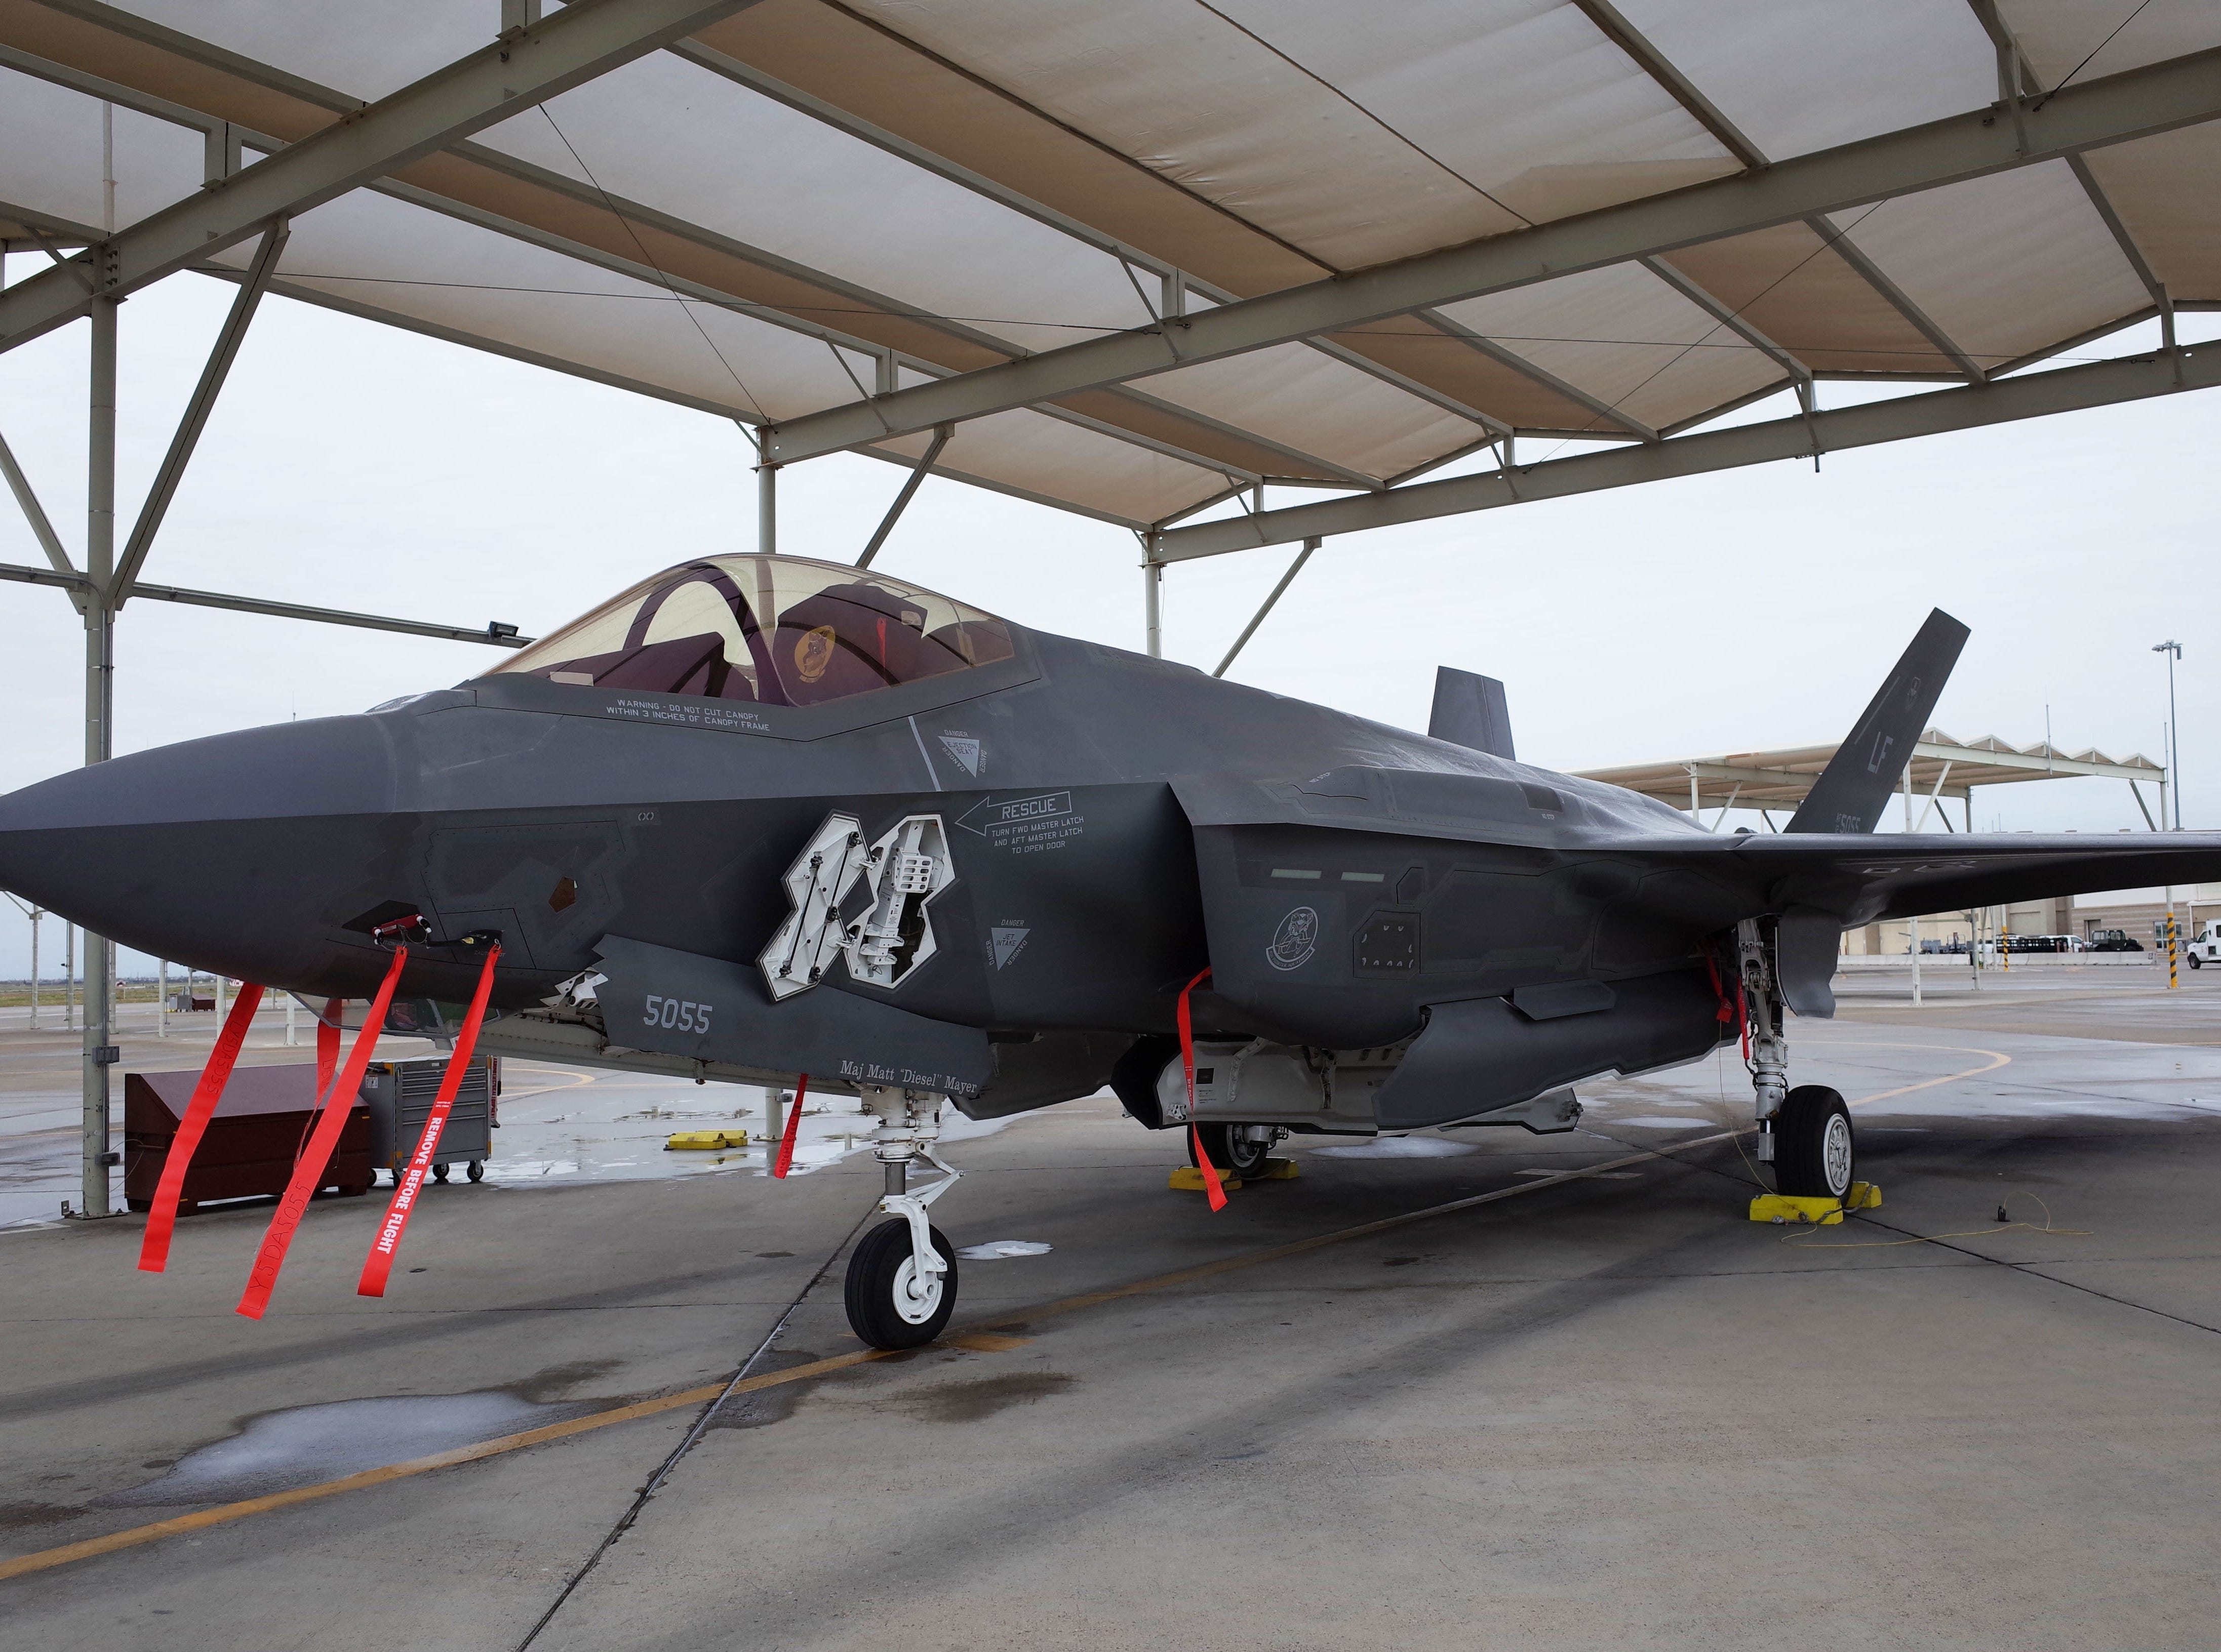 F-35s are sold to many U.S. allies, including Australia, Italy, Norway and Turkey, which train pilots at Luke Air Force Base.